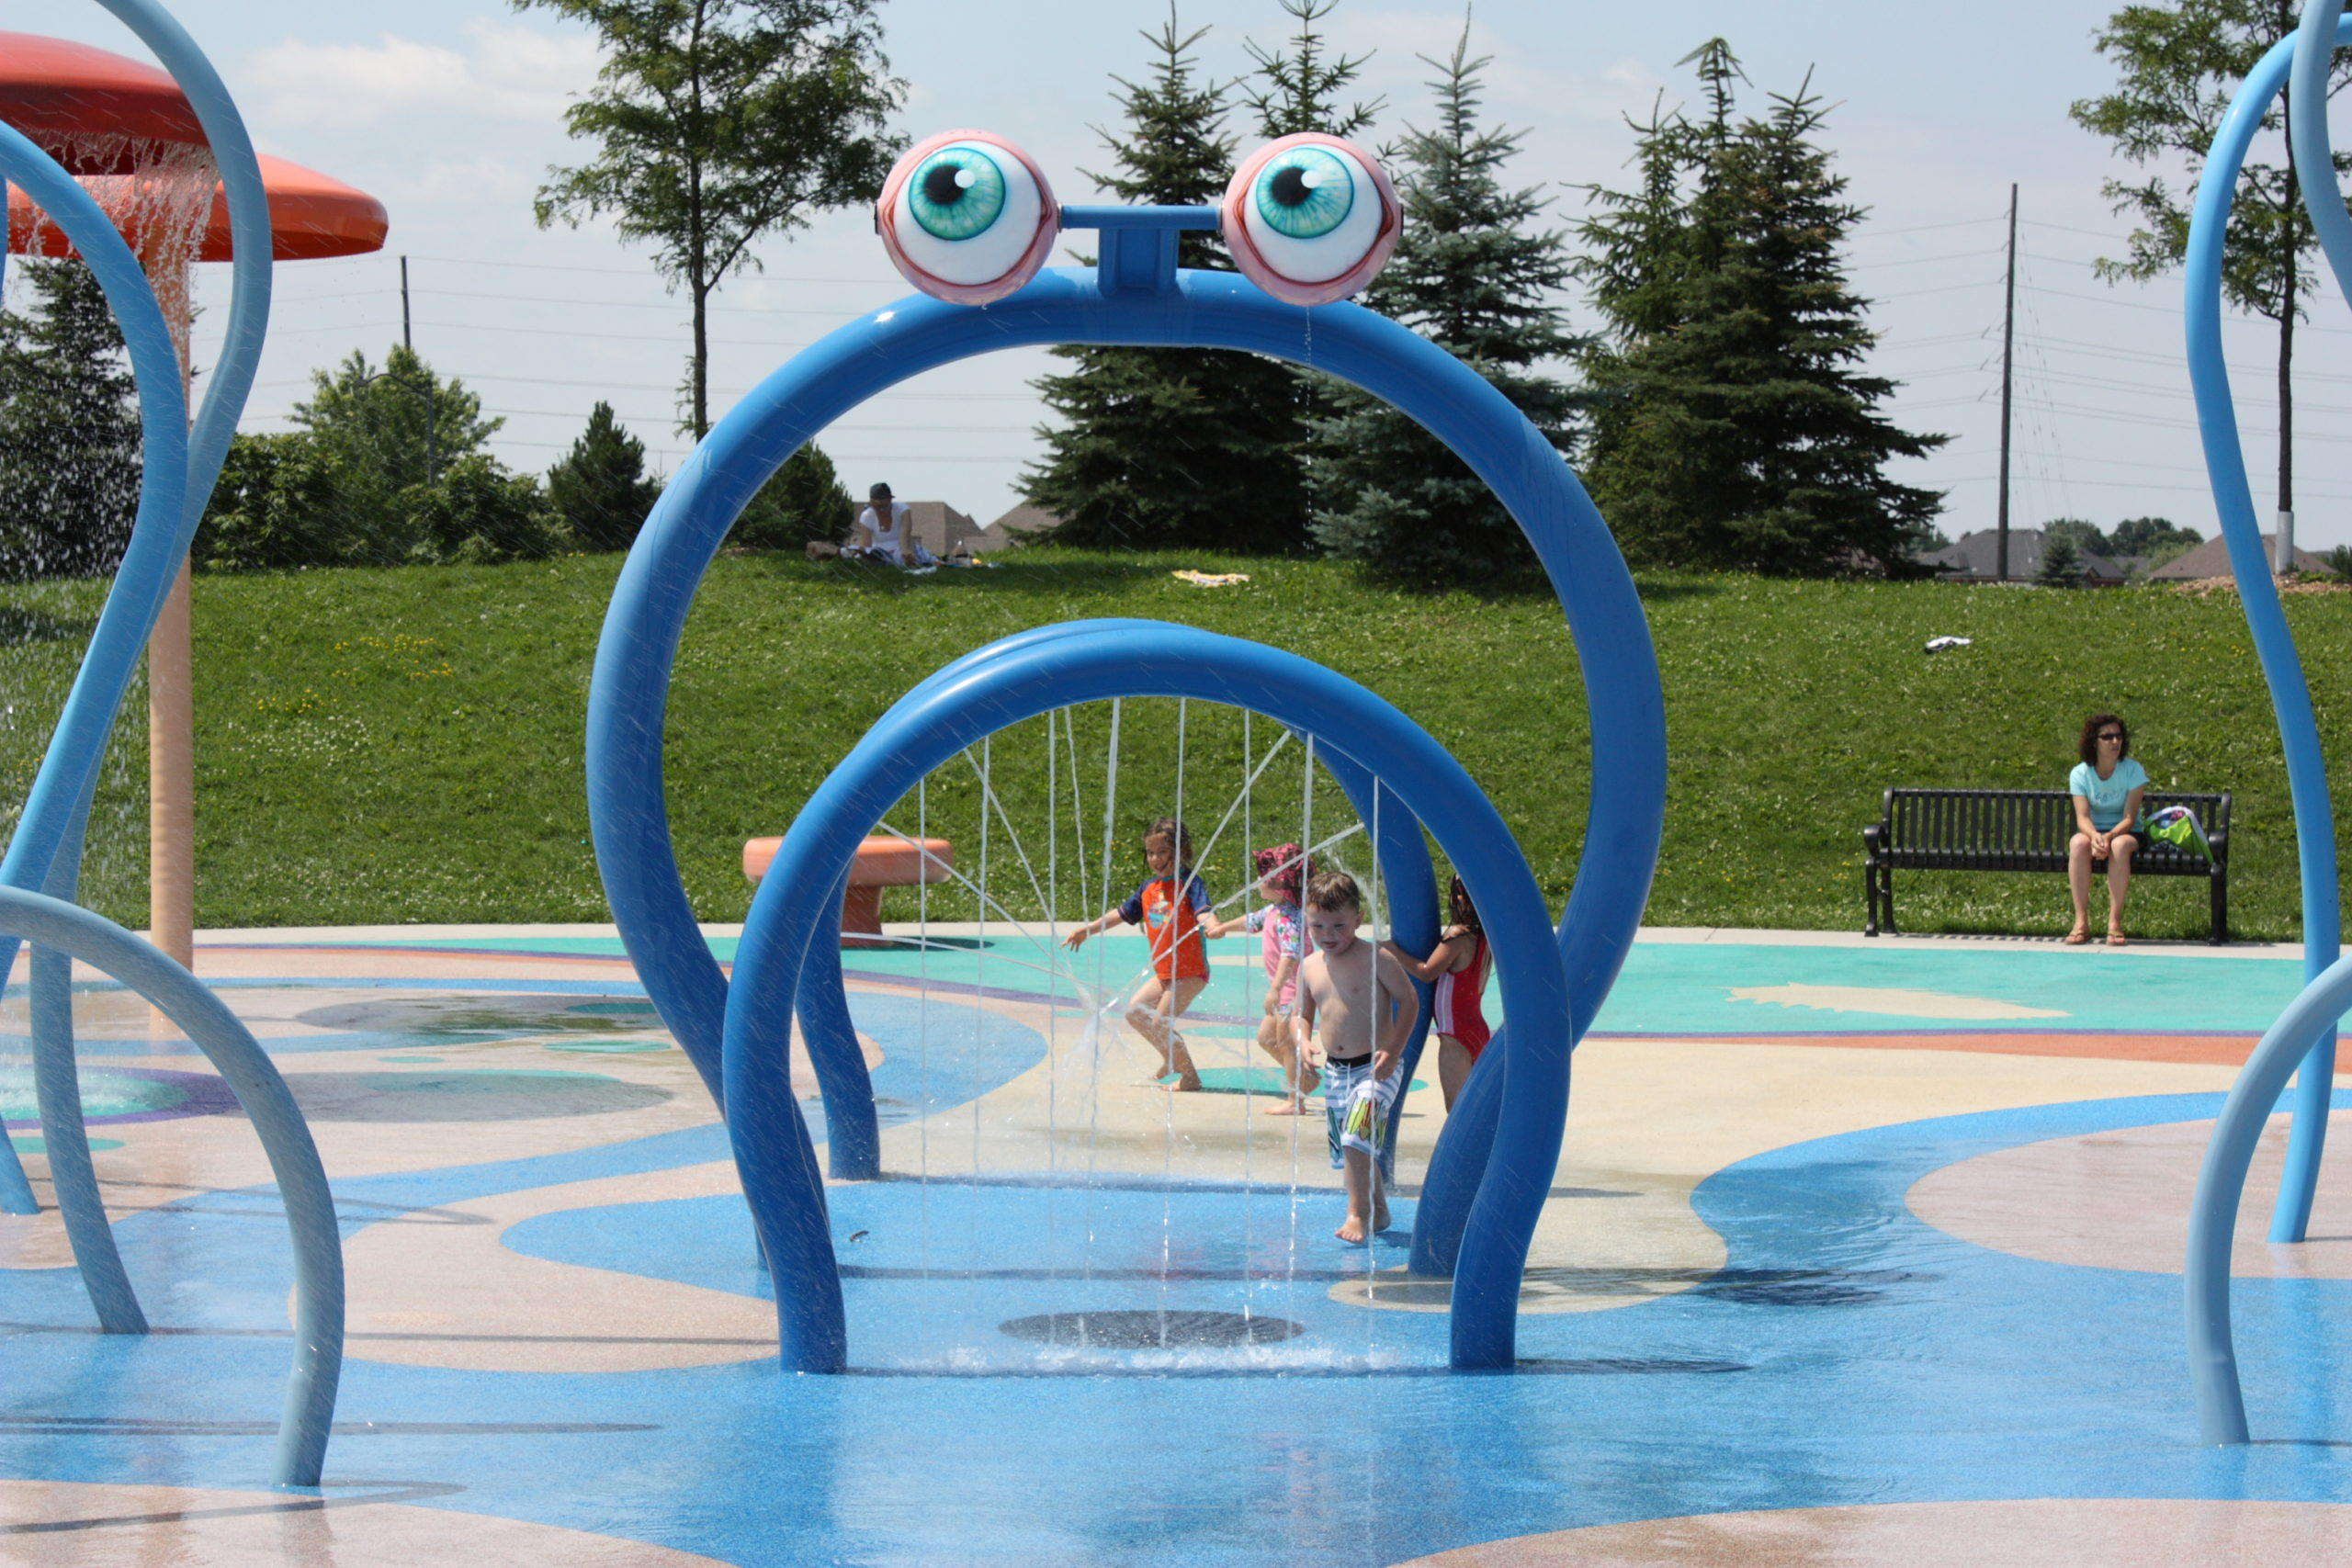 Children playing in the water park.